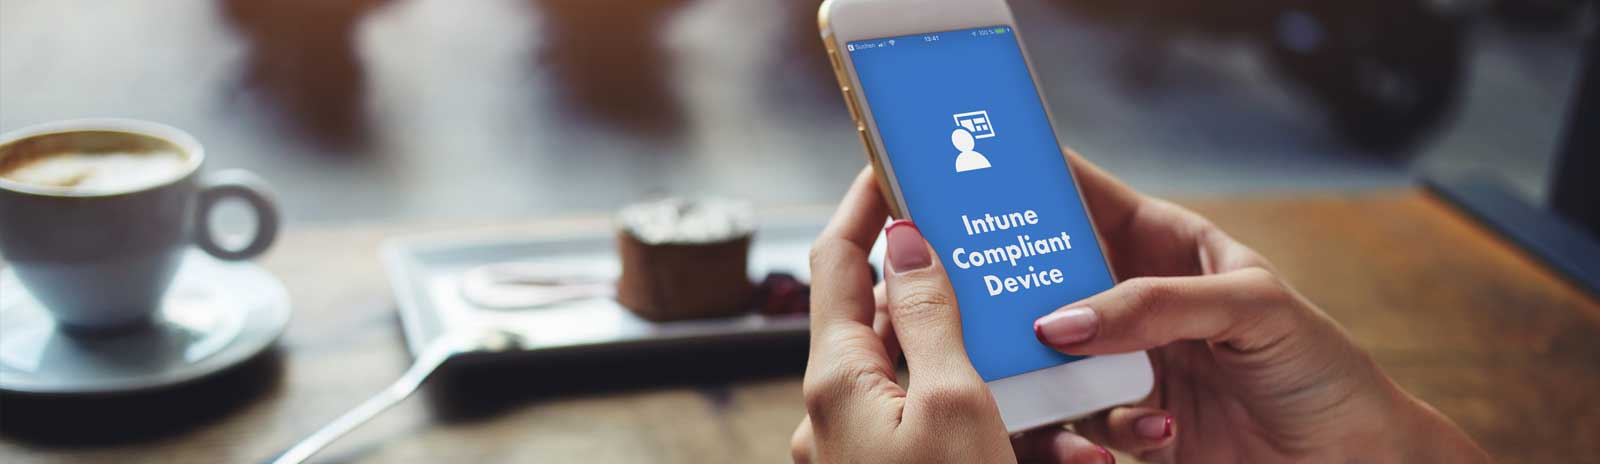 Intune Compliant Device Mobile Management